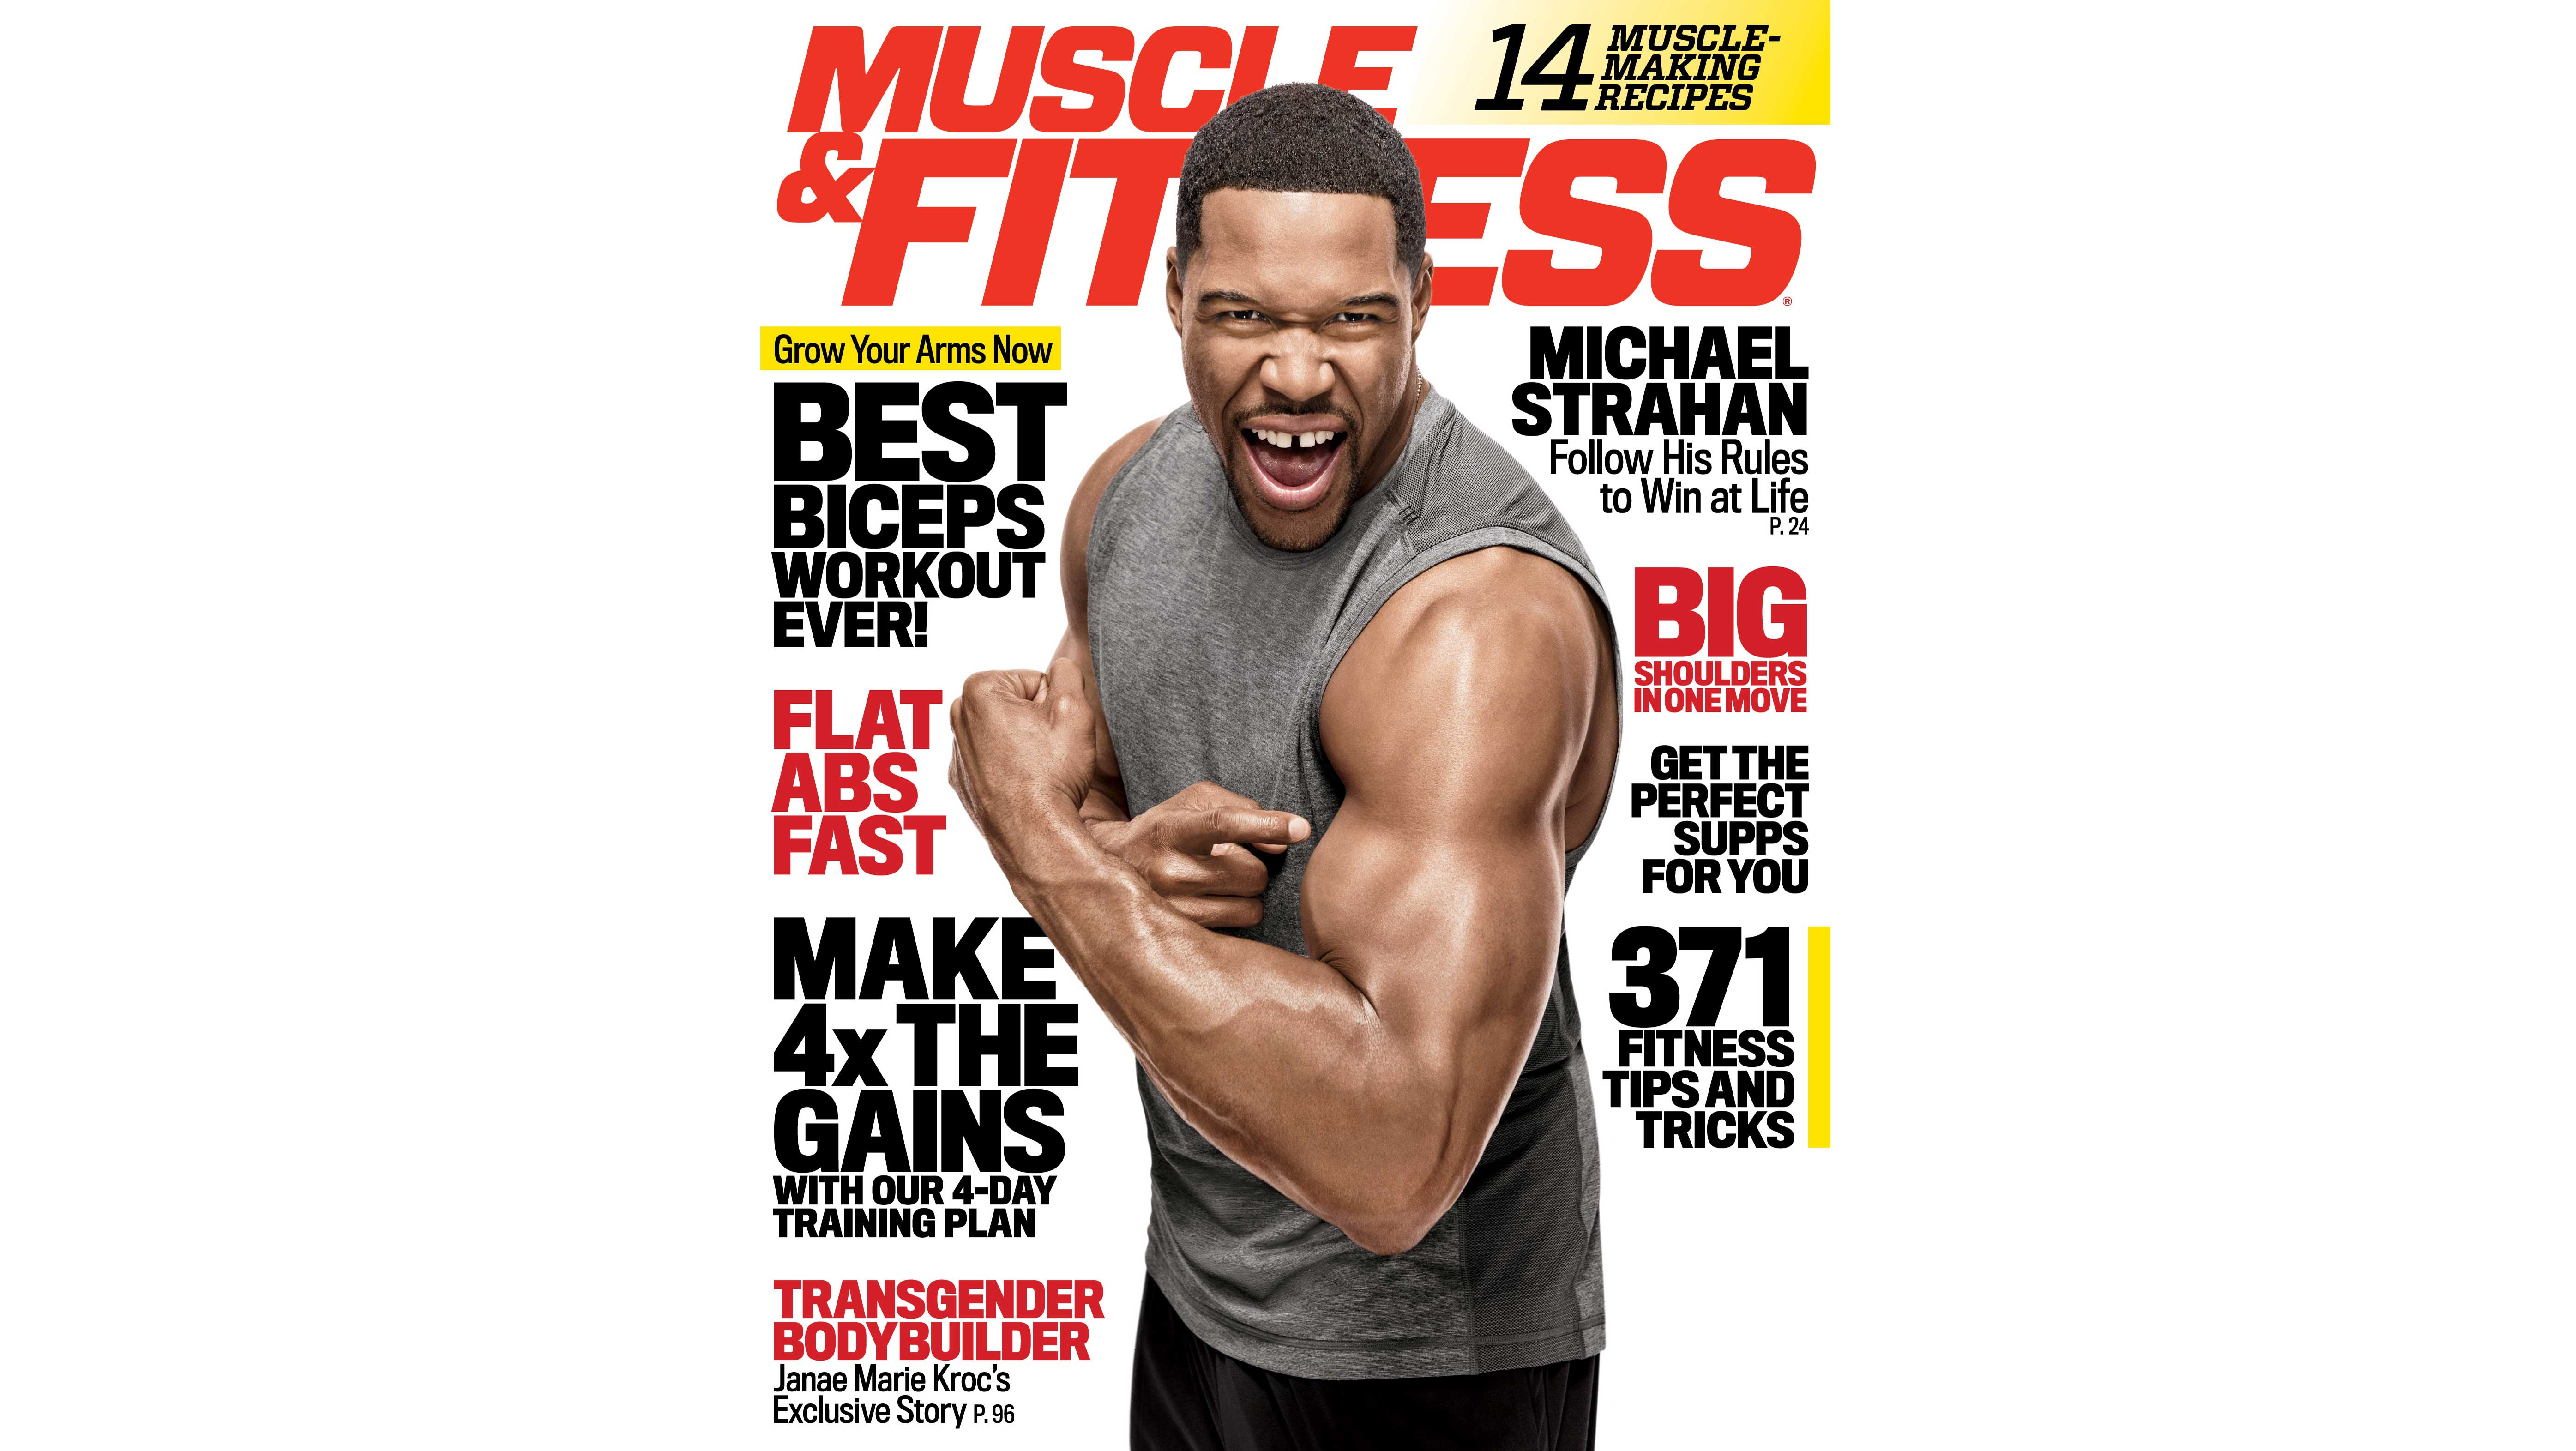 OCT 2015 MUSCLE & FITNESS vintage bodybuilding magazine - MICHAEL STRAHAN